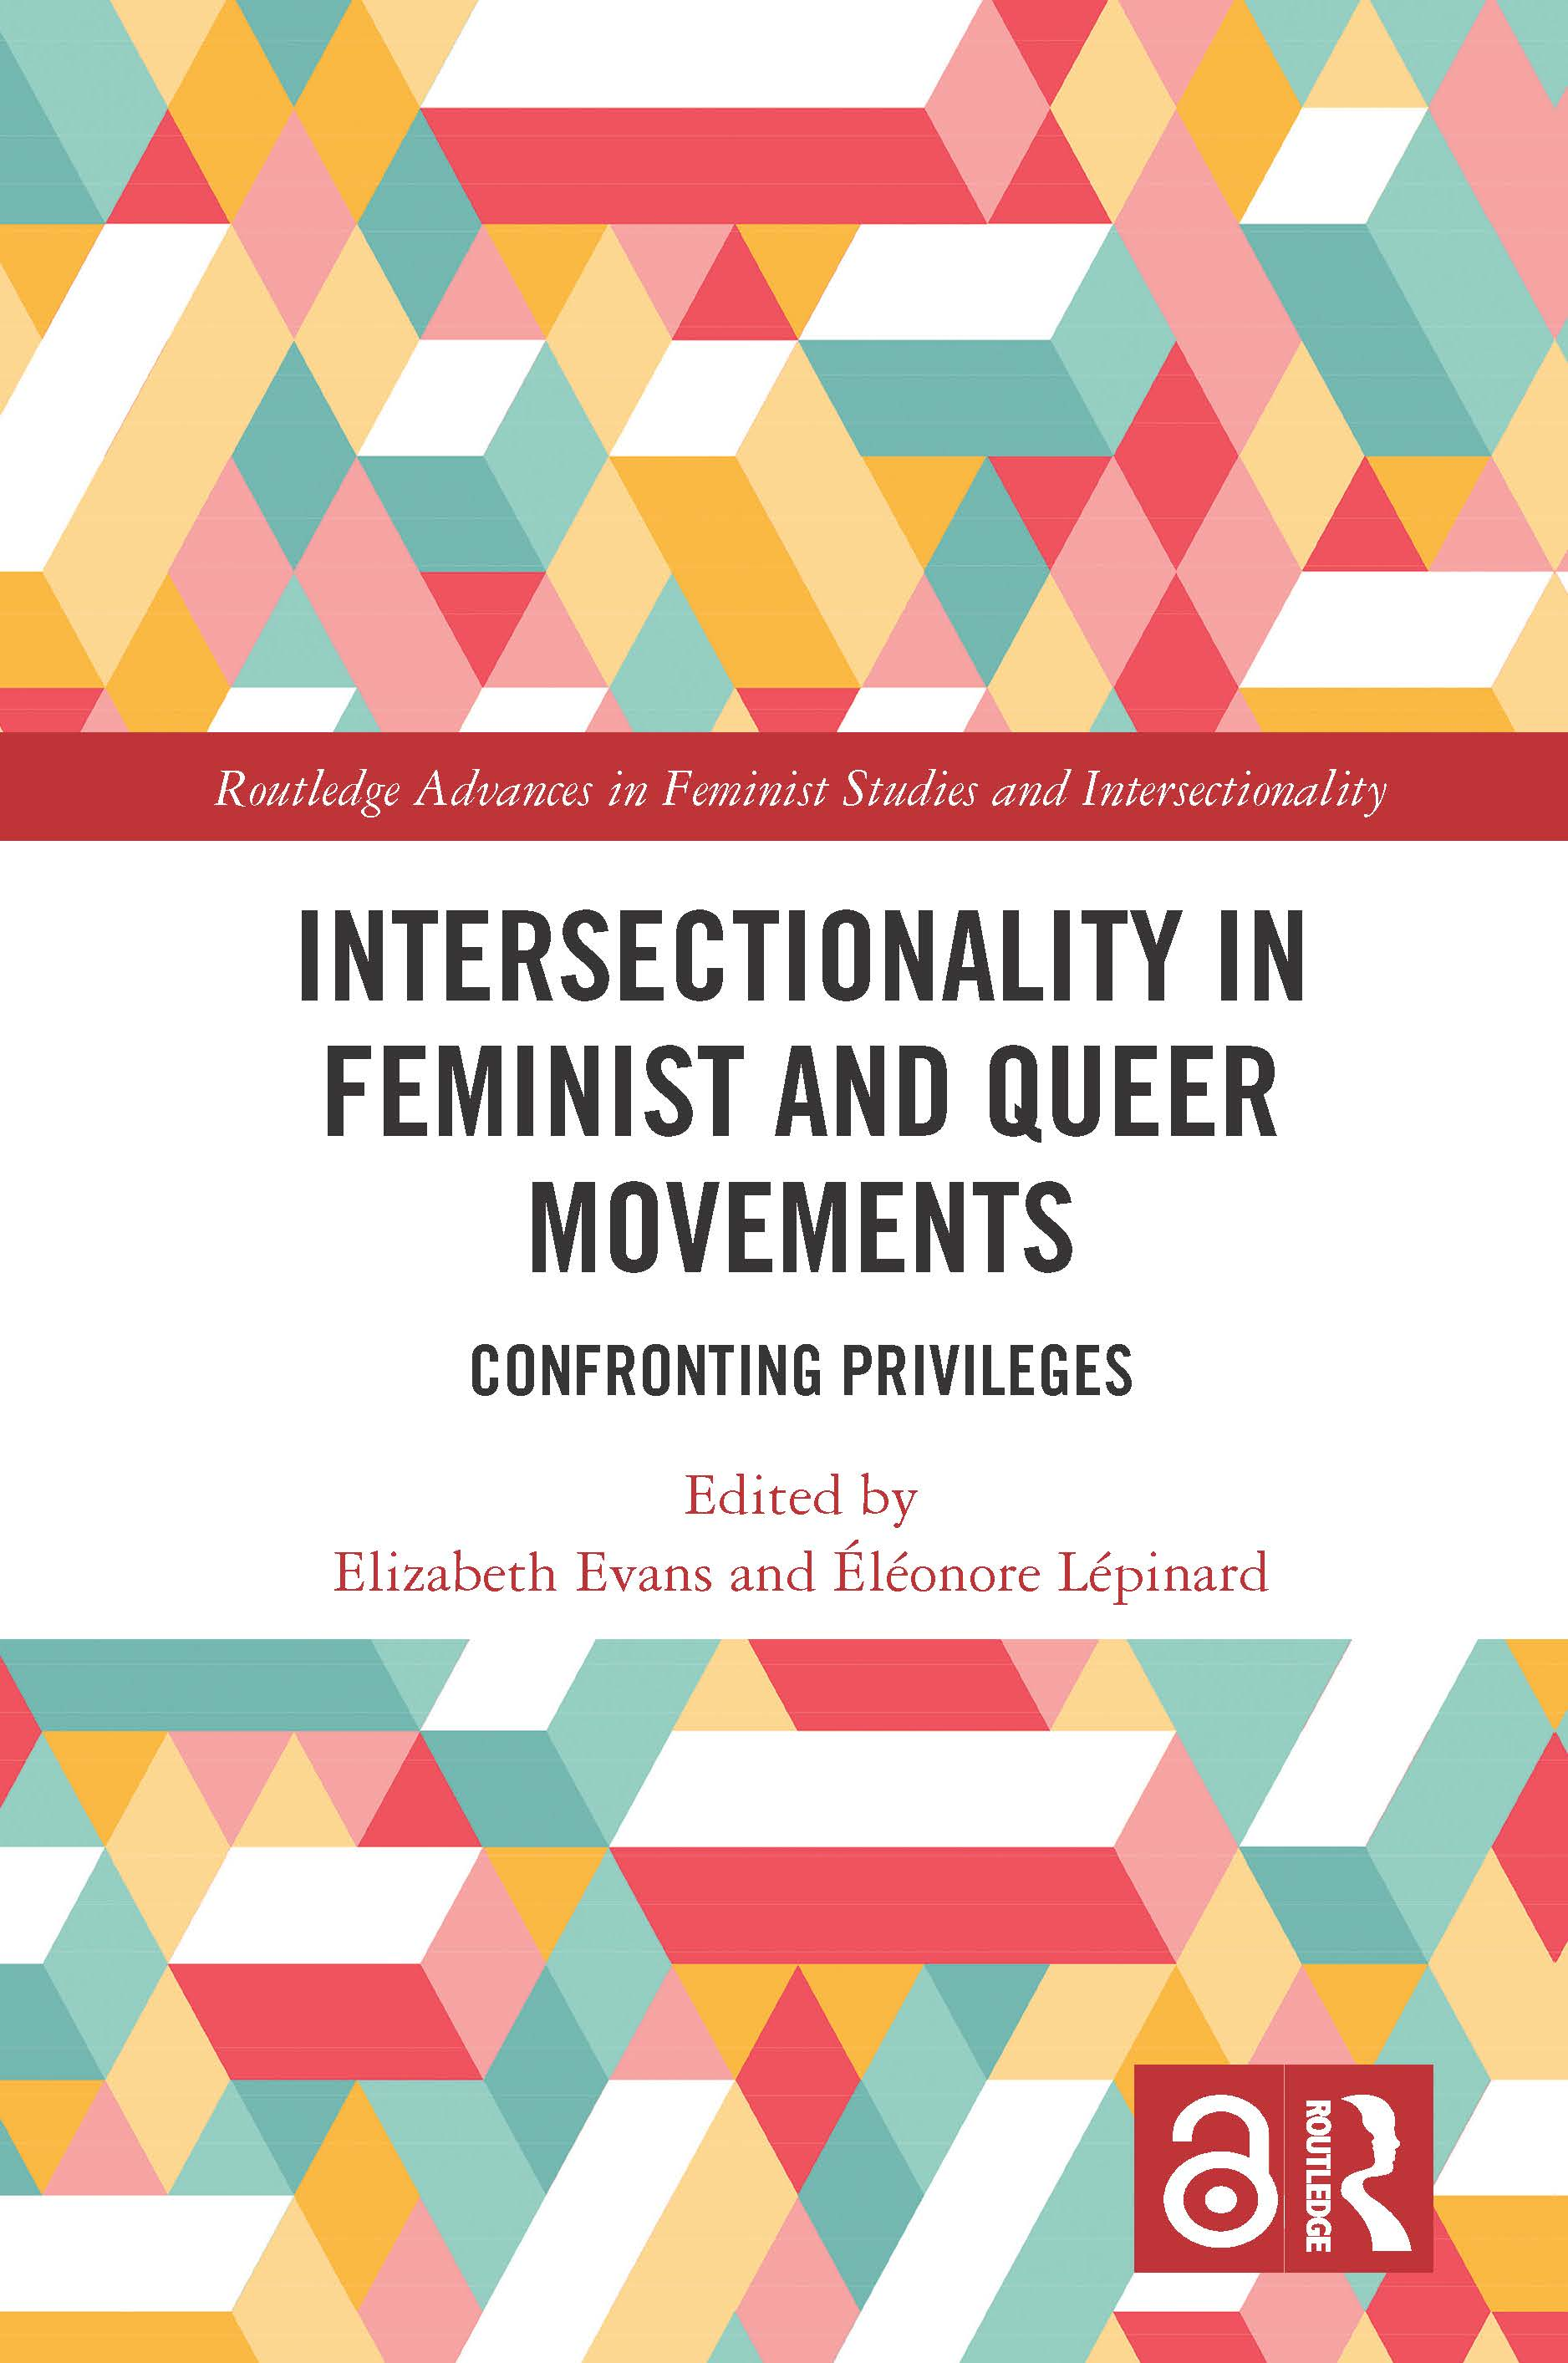 Intersectionality in Feminist and Queer Movements: Confronting Privileges book cover